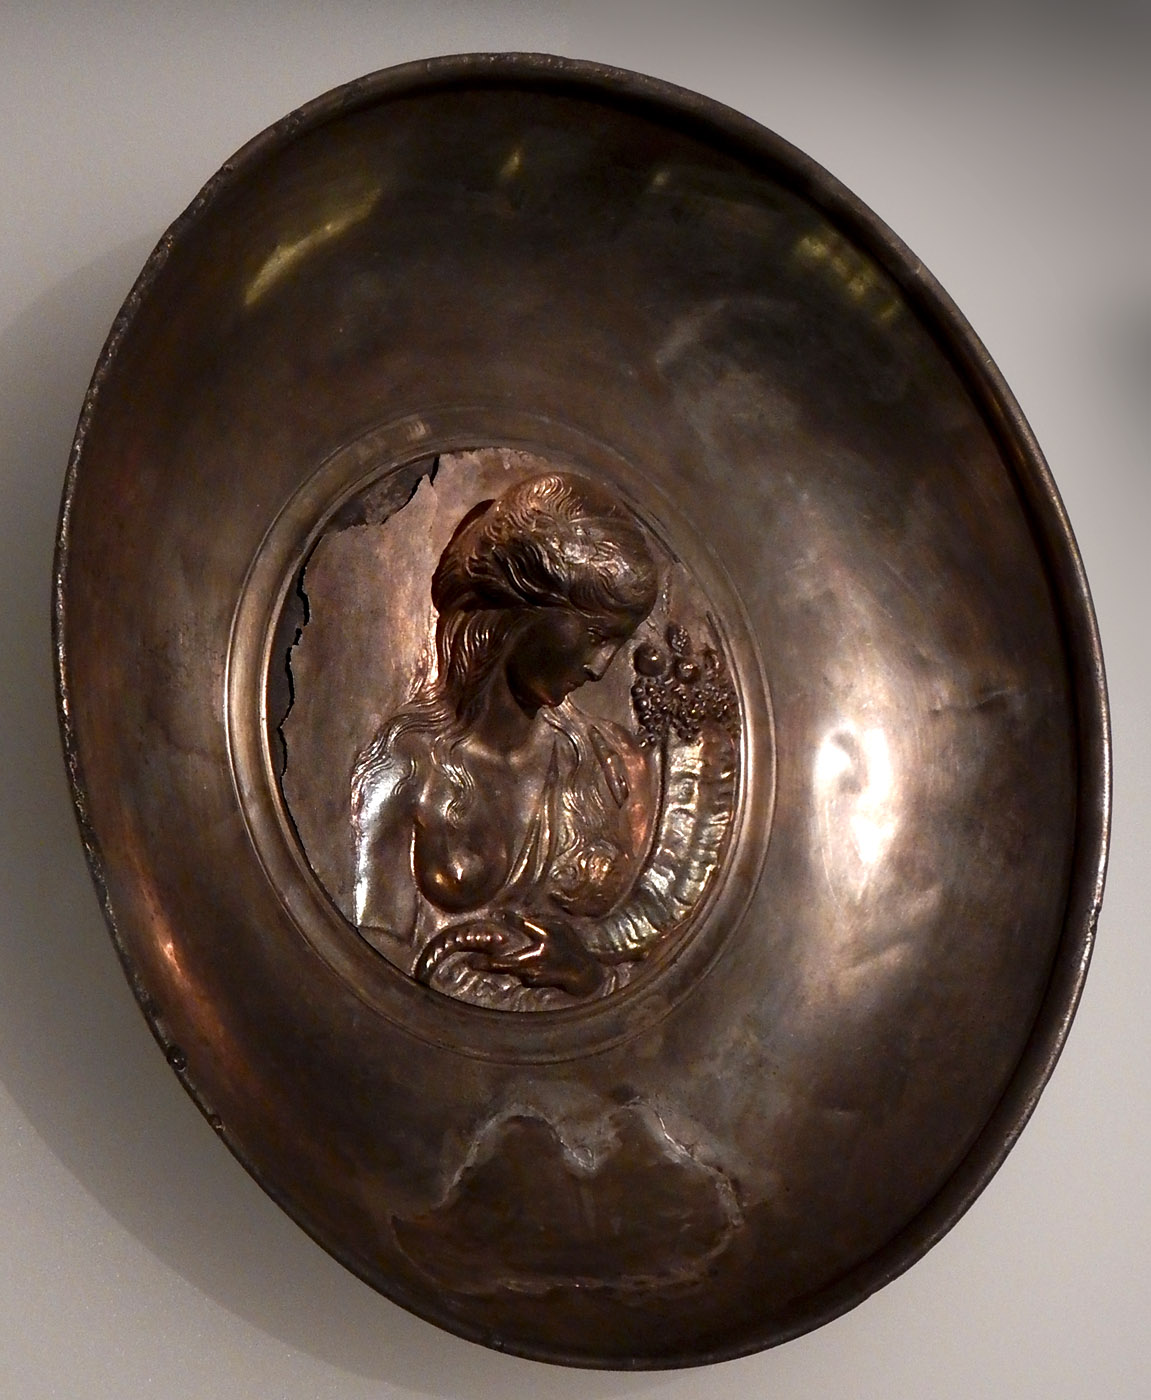 Phiale with an image of a goddess (Fortuna or Amalthea with cornucopia. Silver, partially gilt. 2nd cent. CE. Presumably Iberian work. Tbilisi, Georgian National Museum